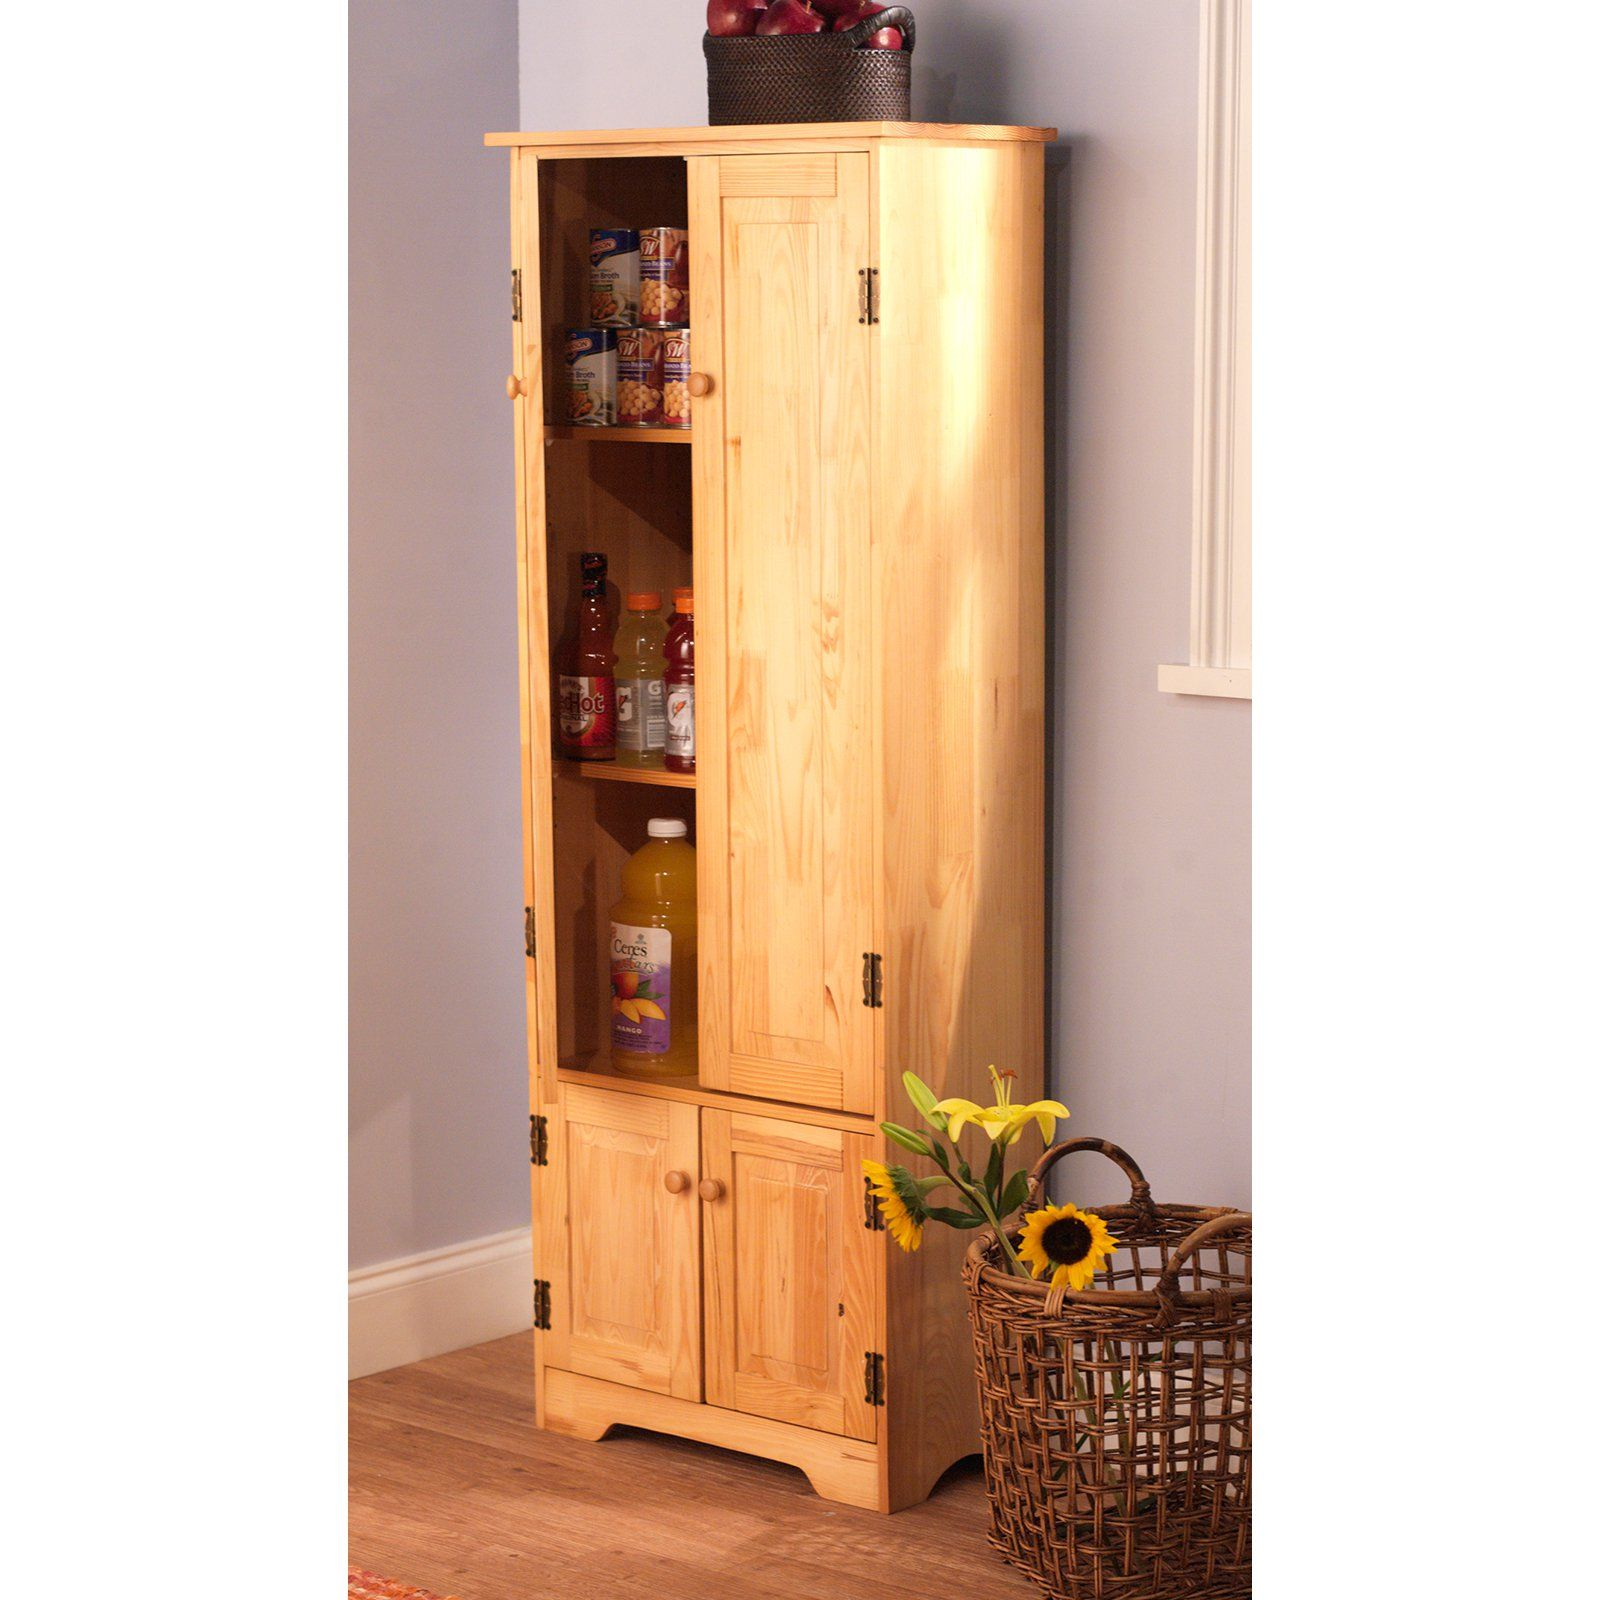 Kitchen Storage Cabinets At Target Target Marketing Systems Extra Tall Cabinet From